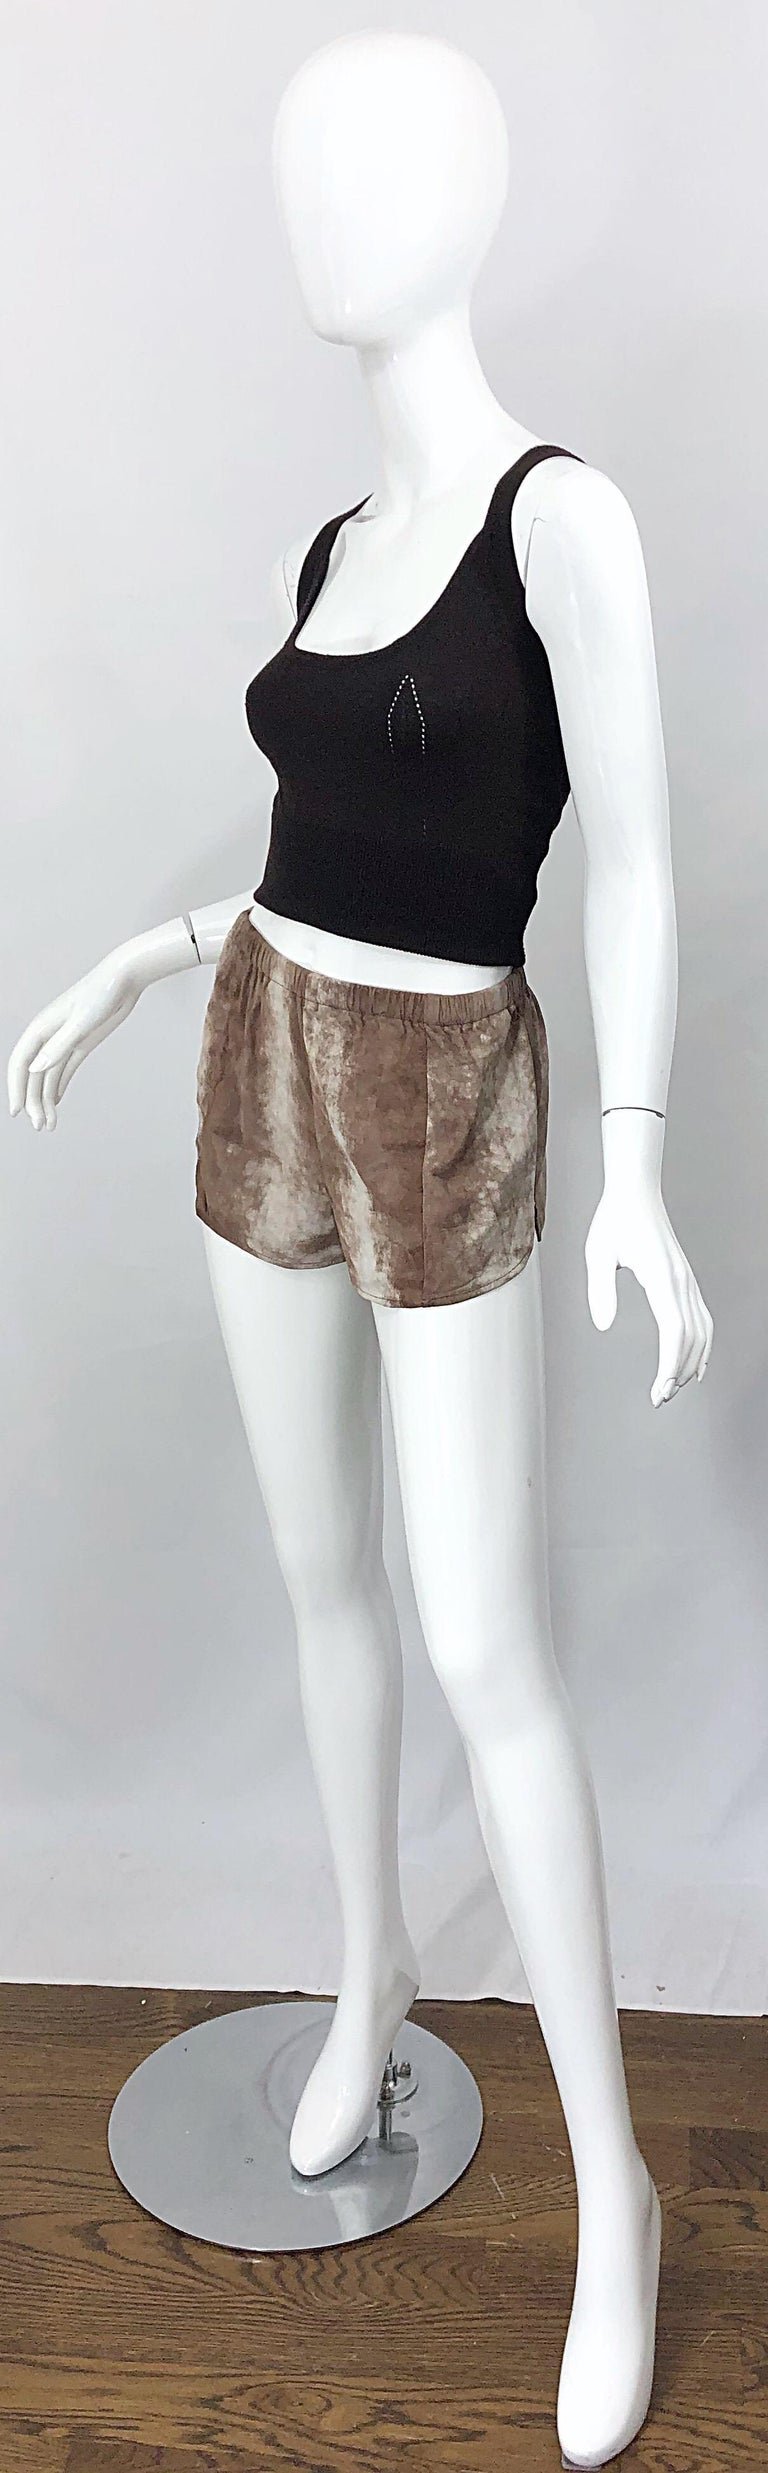 1980s Love, Melody Sabatasso Sheepskin Leather Brown Vintage 80s Hot Pant Shorts For Sale 5